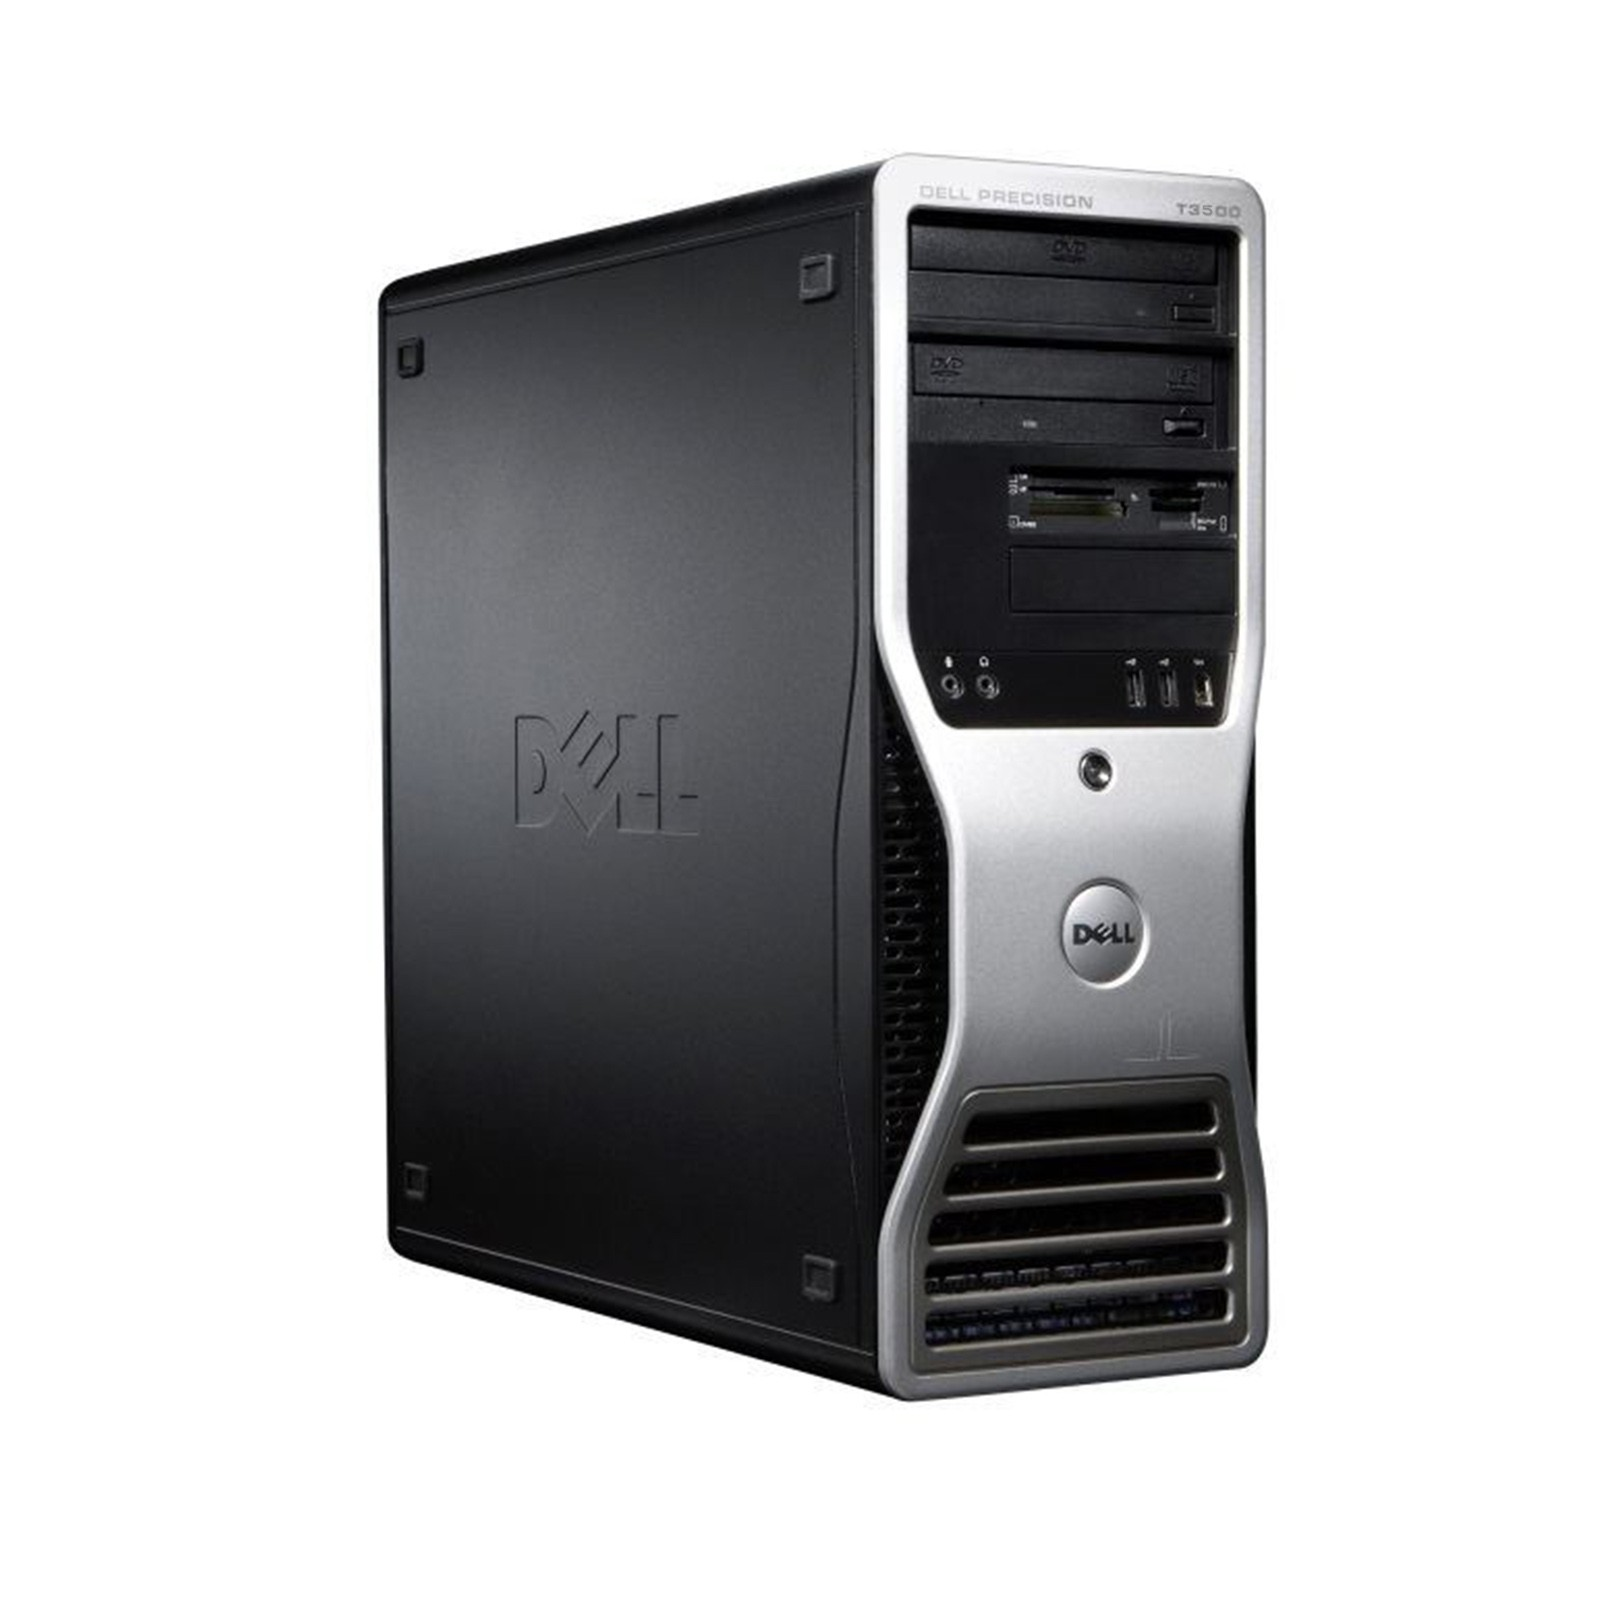 DELL PRECISION T3500 NVIDIA NVS295 GRAPHICS DRIVER FOR MAC DOWNLOAD